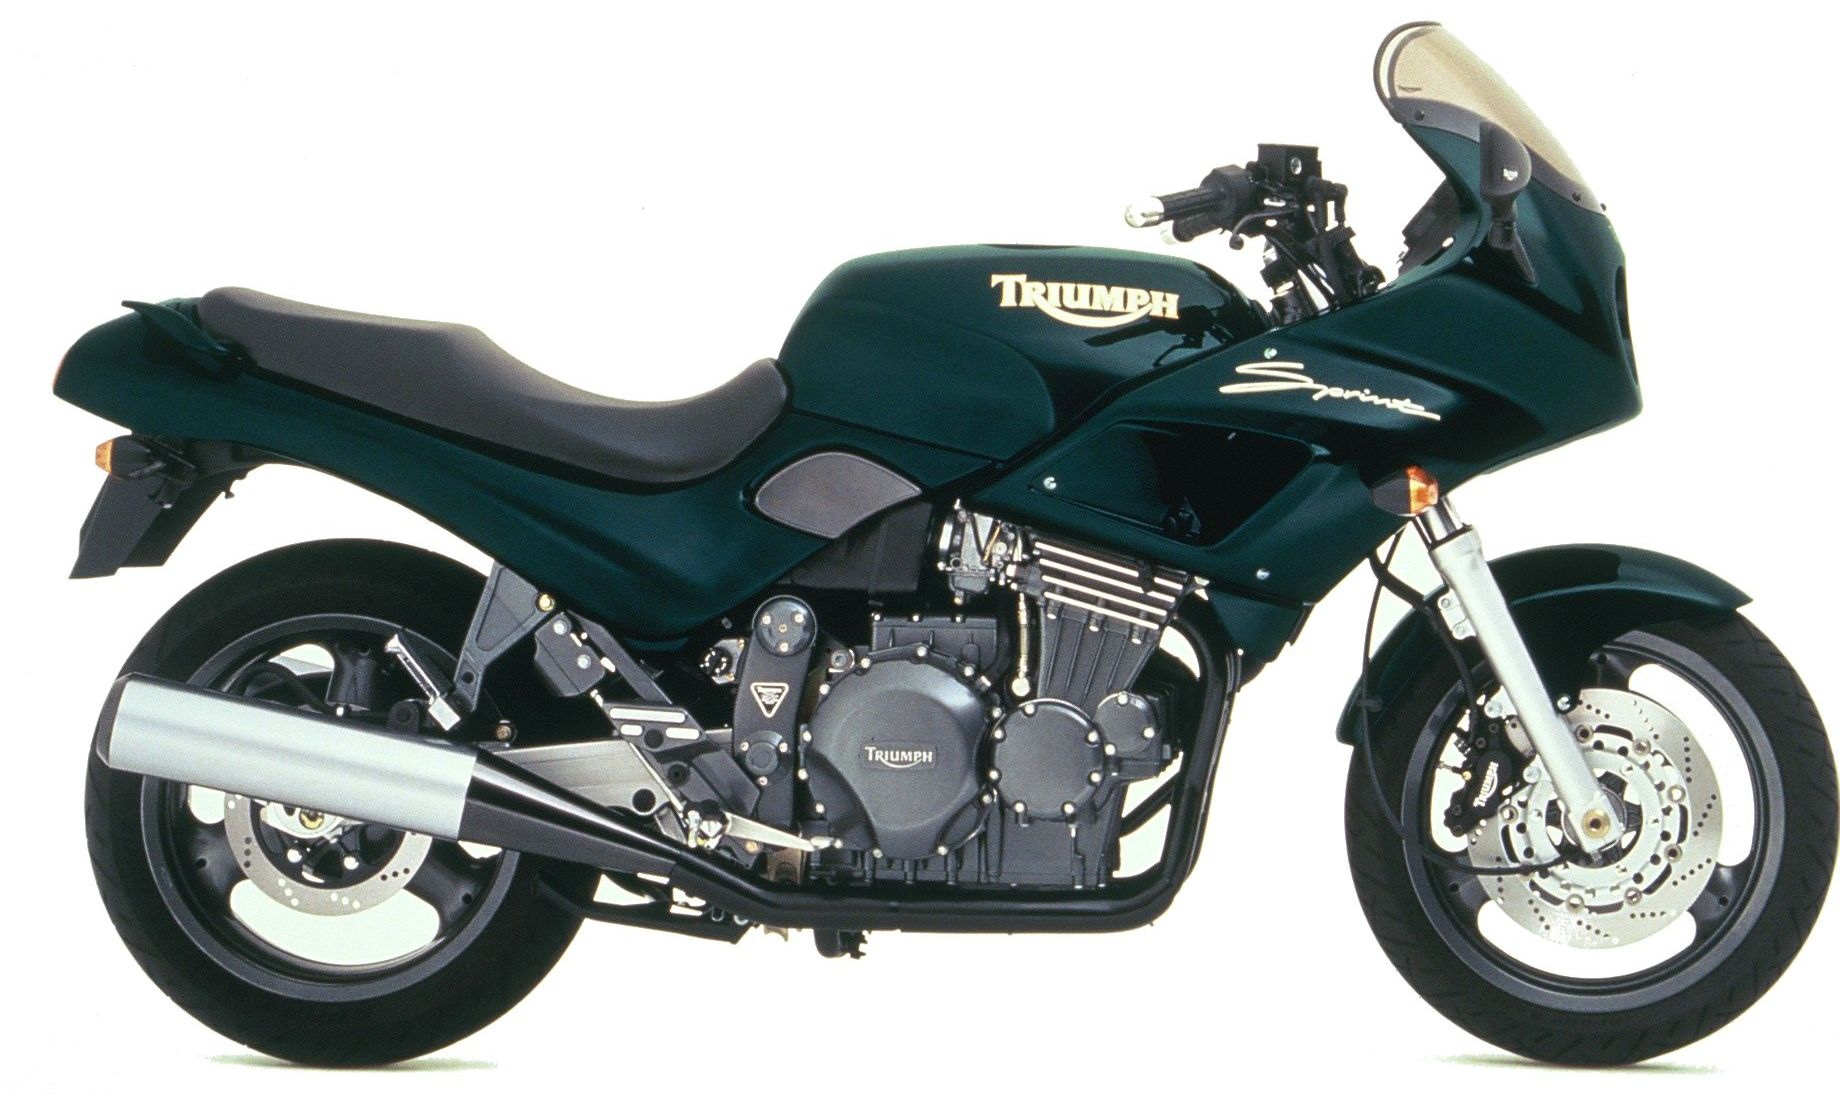 Triumph Trophy 900 1997 wallpapers #129892